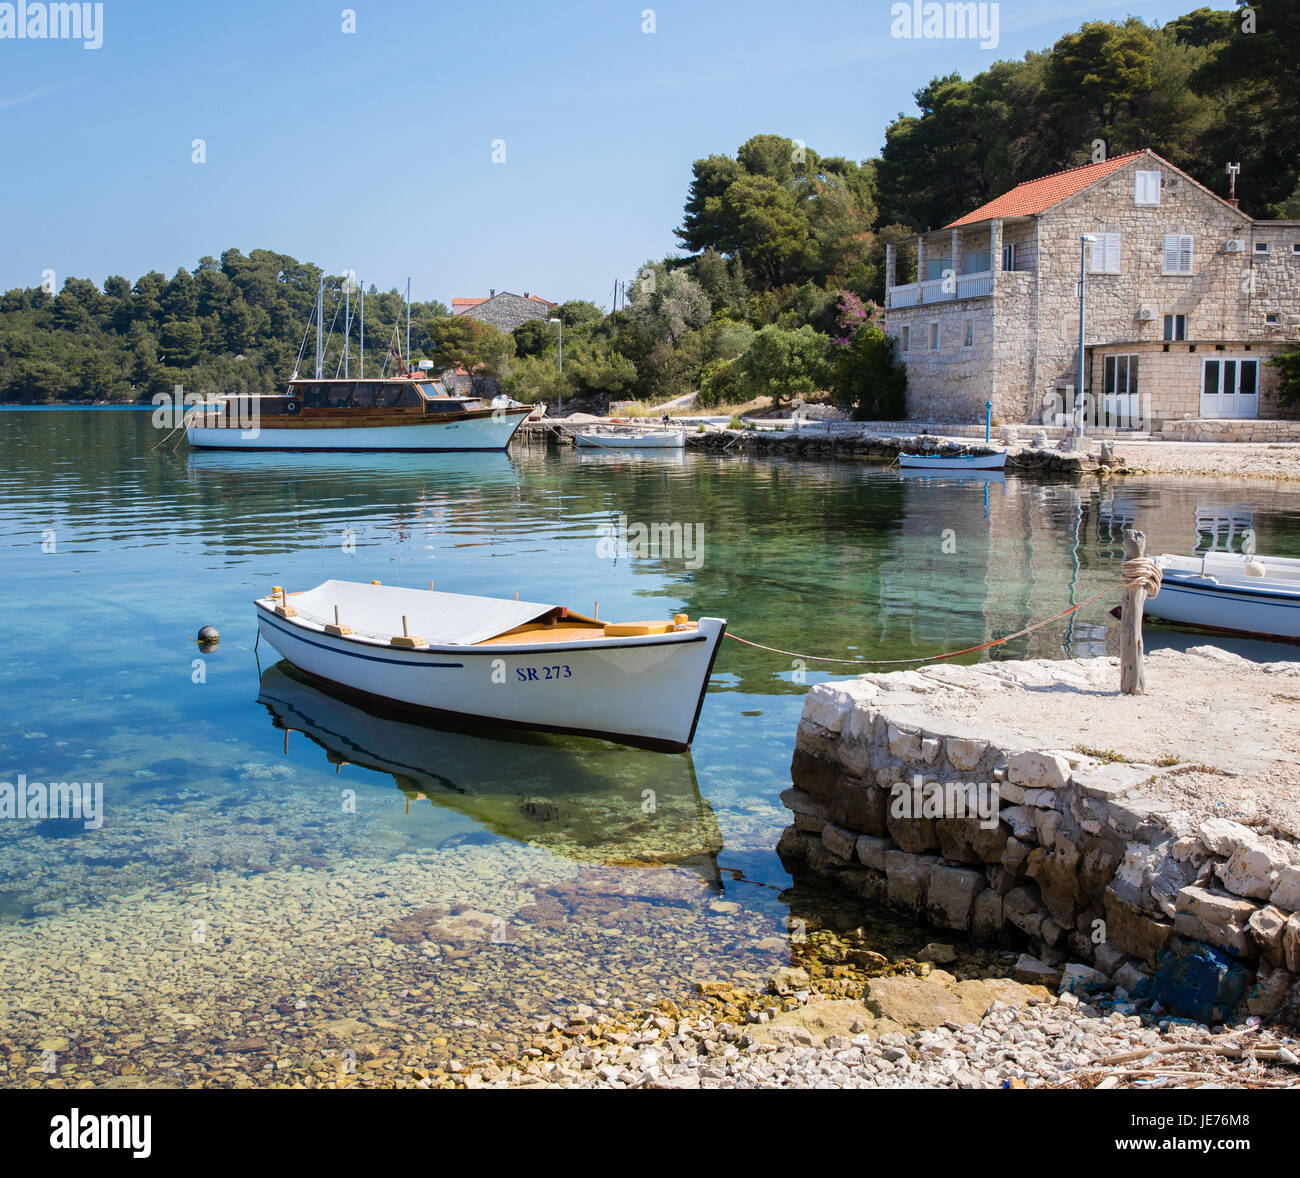 The holiday resort of Pomena on the west coast of the island of Mljet in Croatia - Stock Image